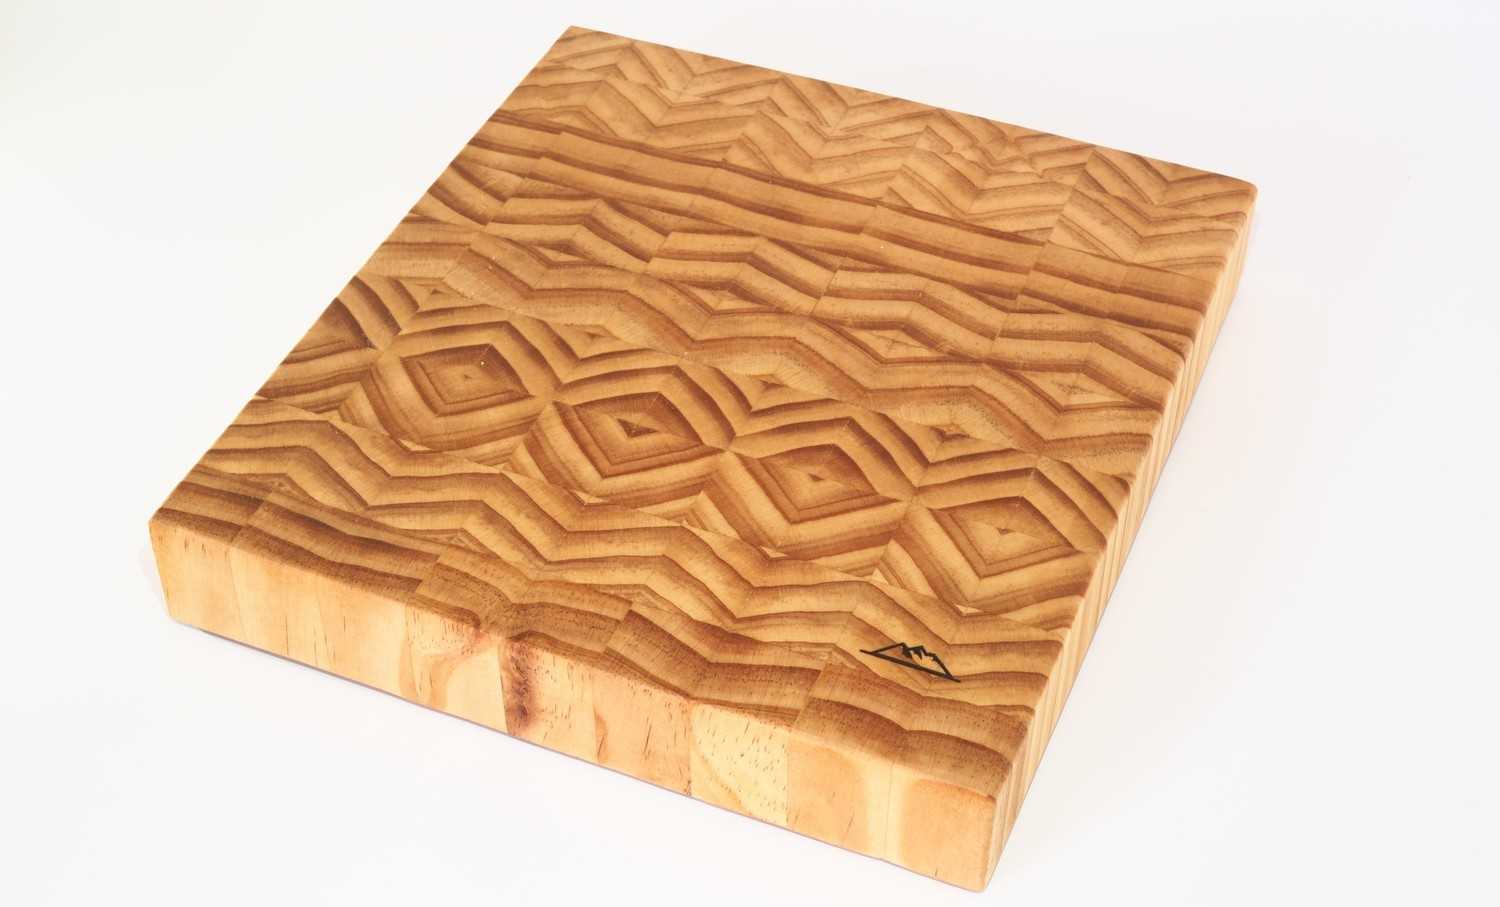 Tabla de corte de Pino Radiata - End Grain Cutting Board